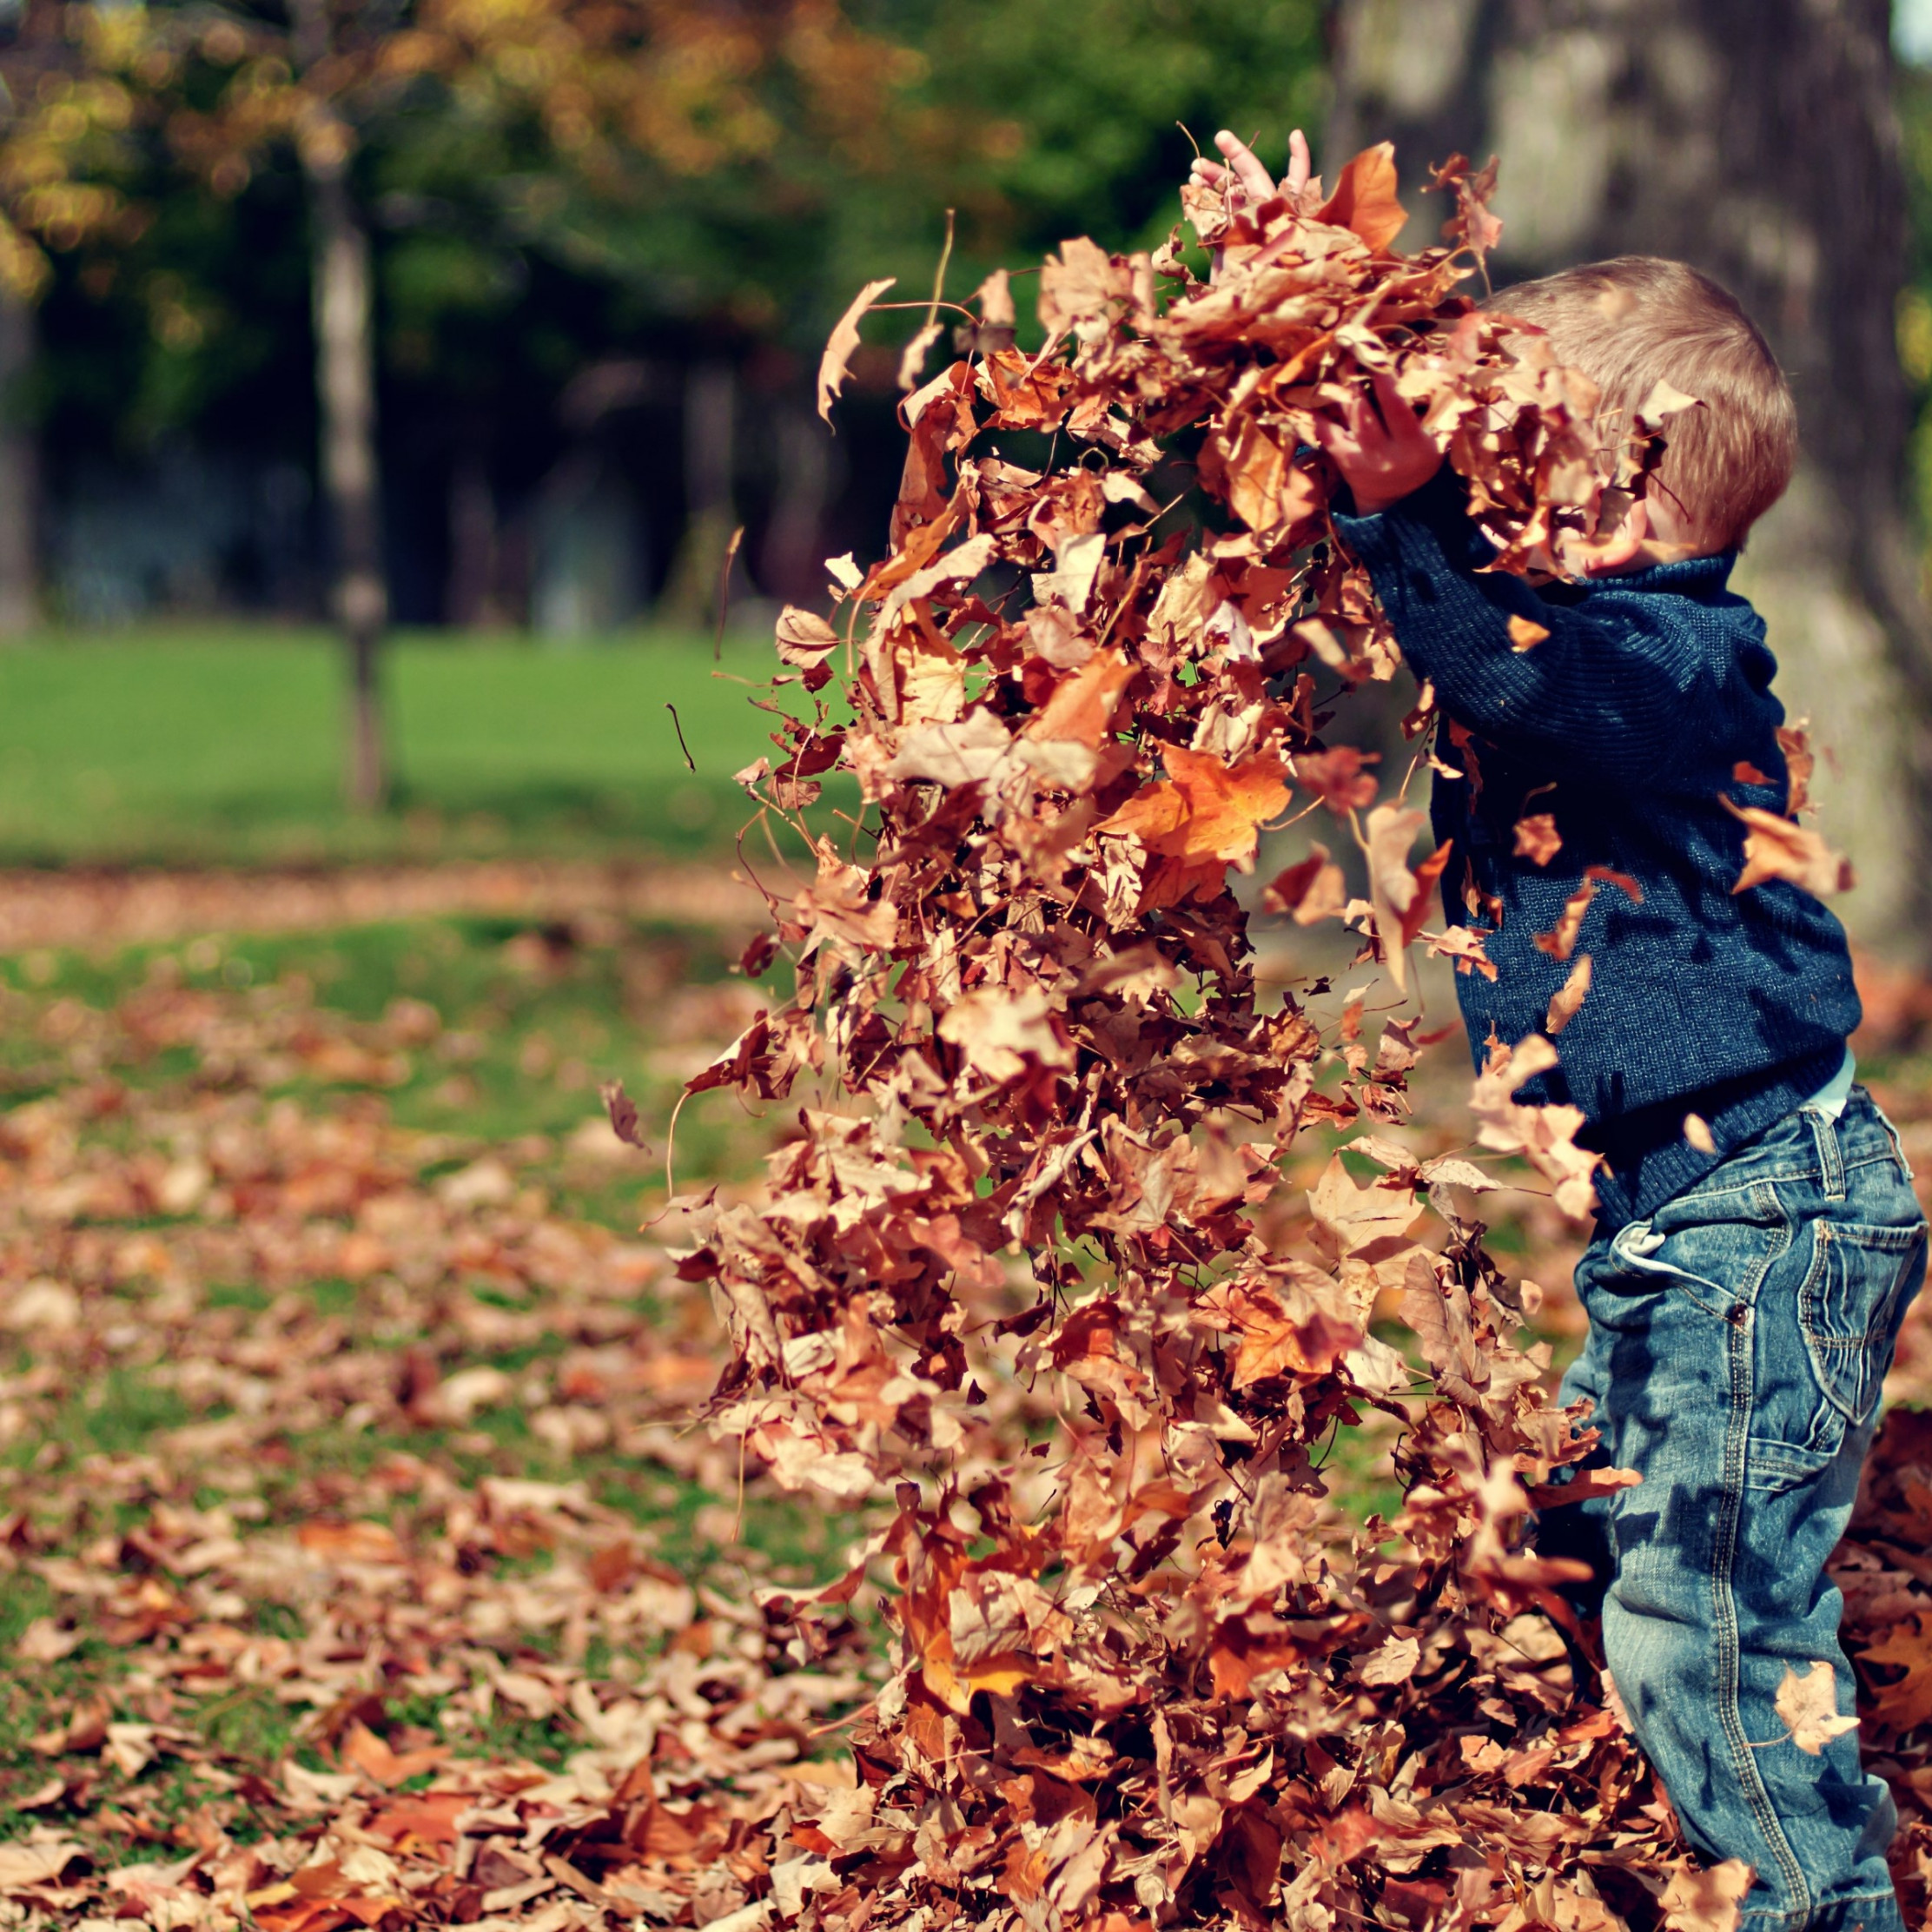 The child is playing with leaves wallpaper 2224x2224